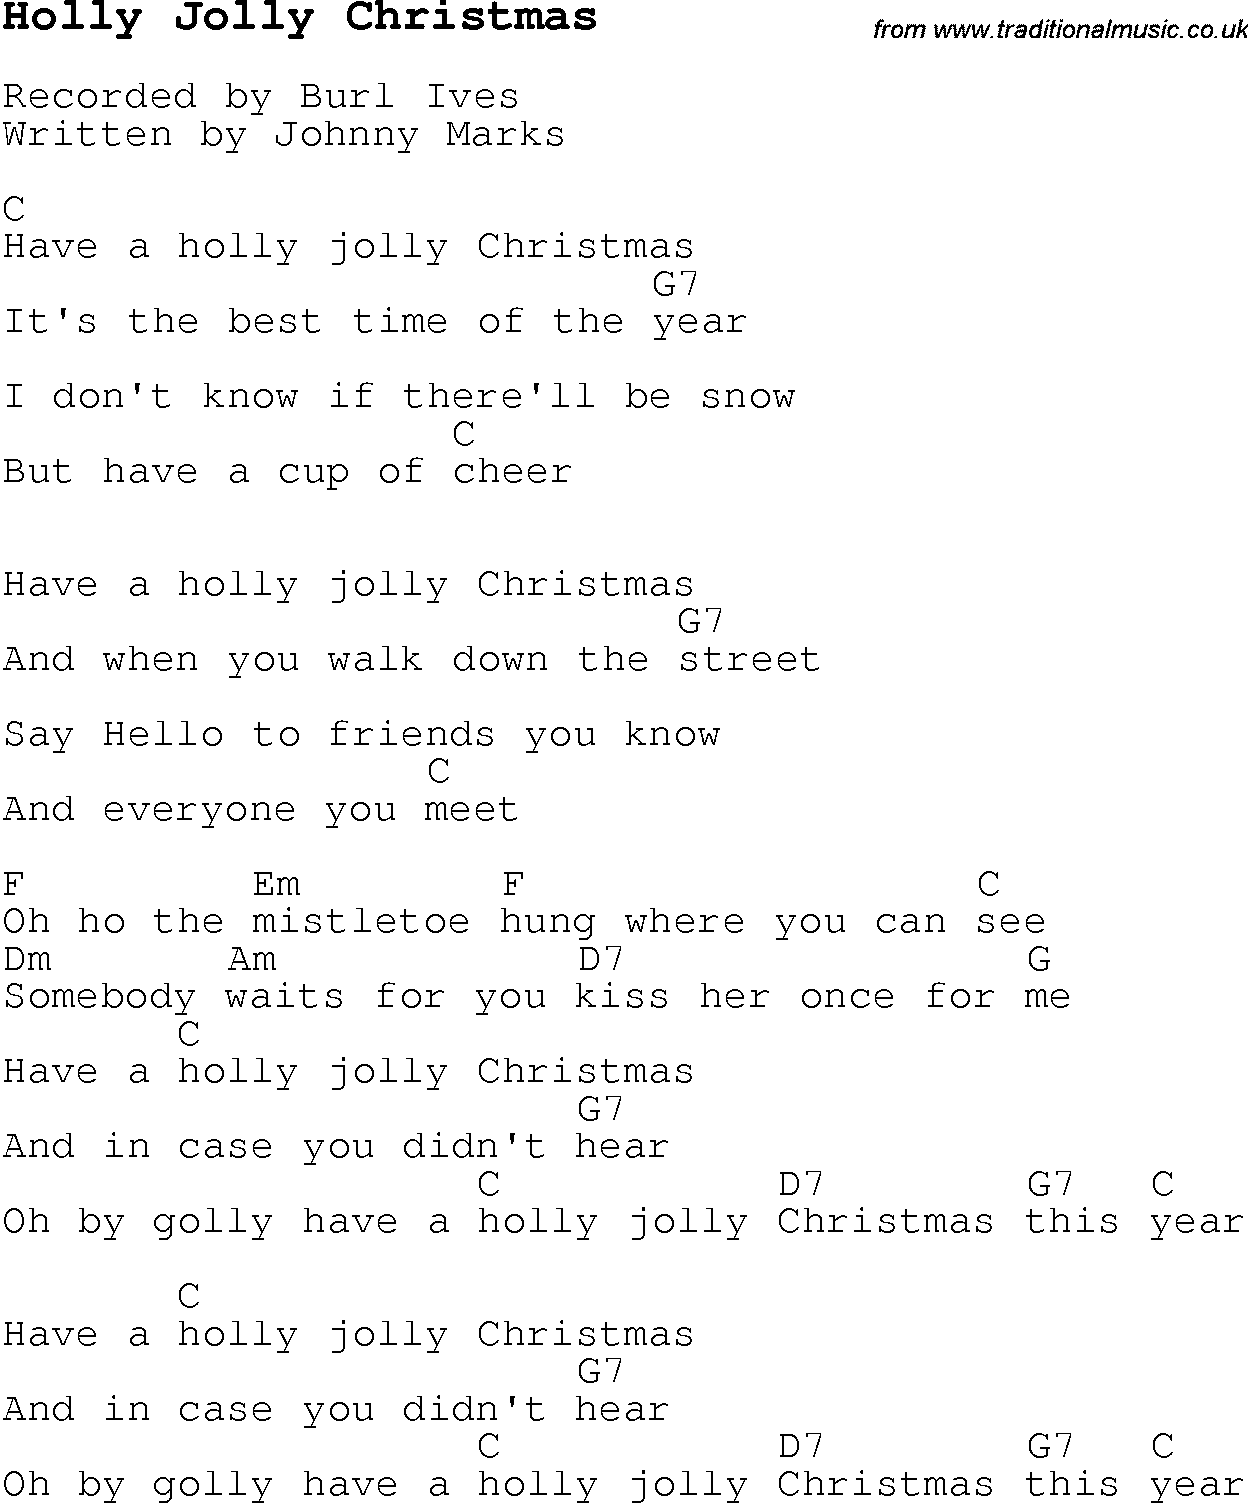 Christmas Songs And Carols Lyrics With Chords For Guitar Banjo For Holly Jolly Christmas Christmas Songs Lyrics Christmas Ukulele Songs Ukulele Chords Songs